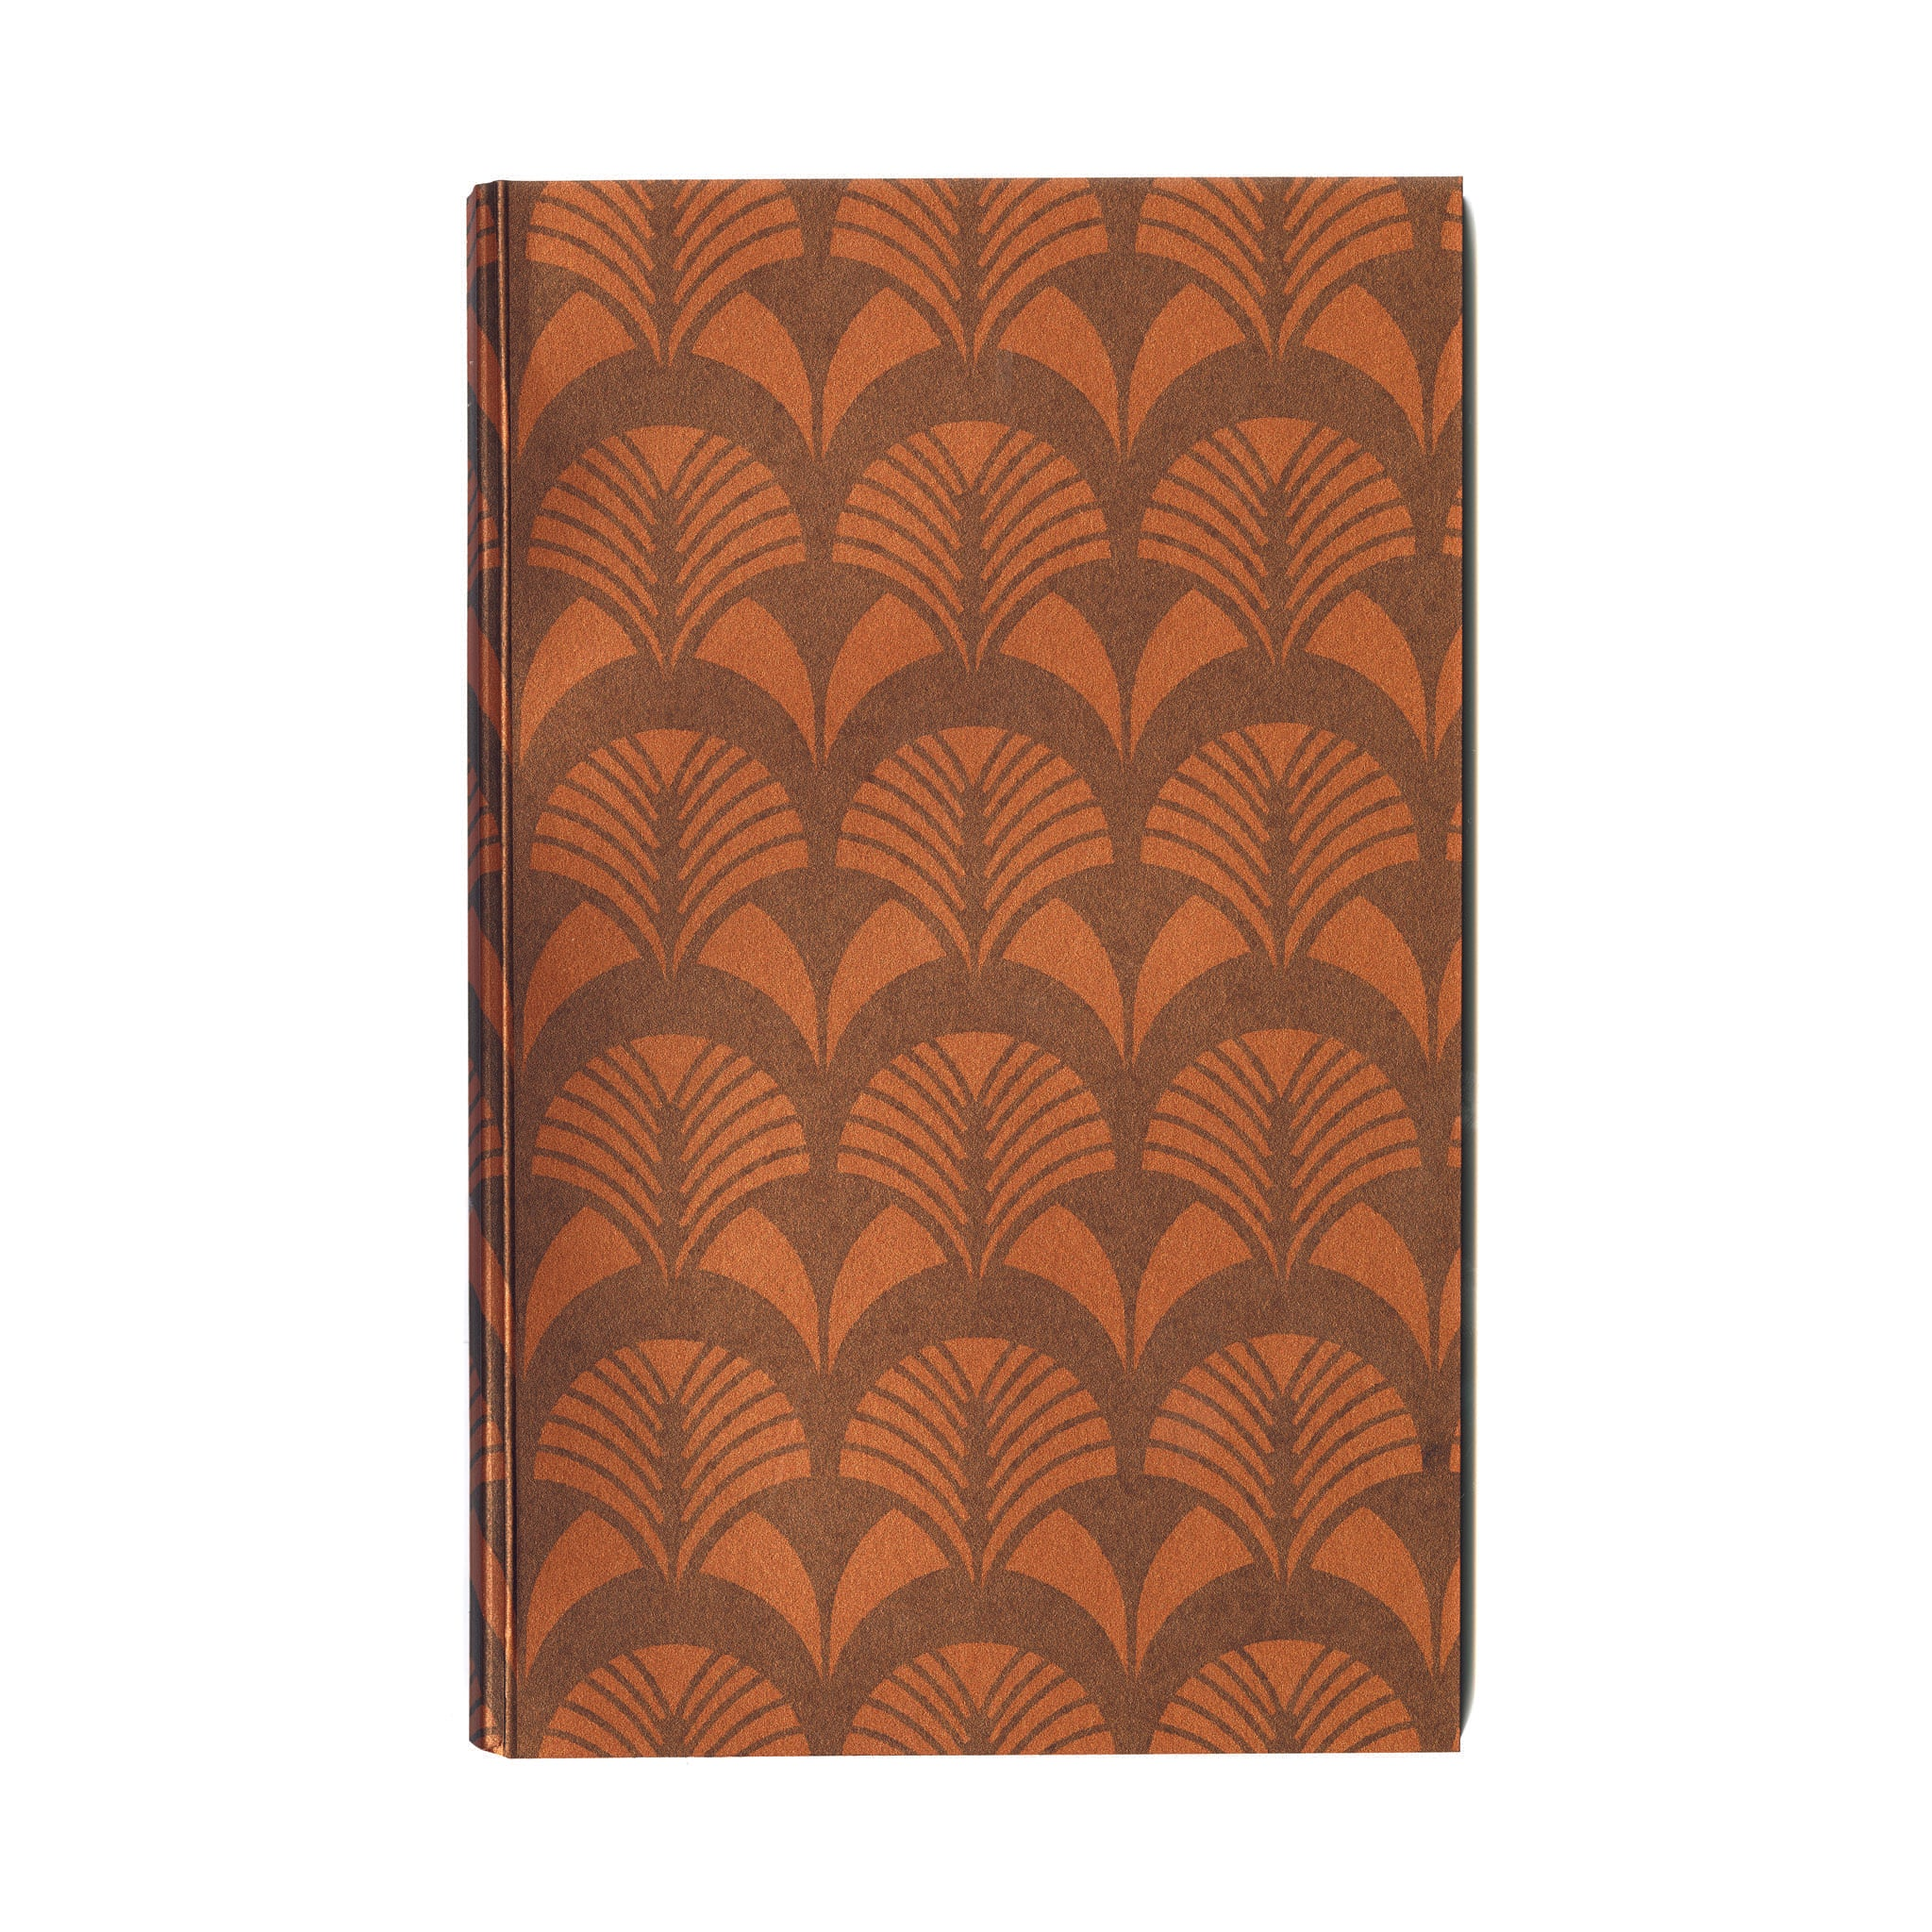 Everyday journal with original deco II orange and black print cover & eighty 100% cotton paper pages